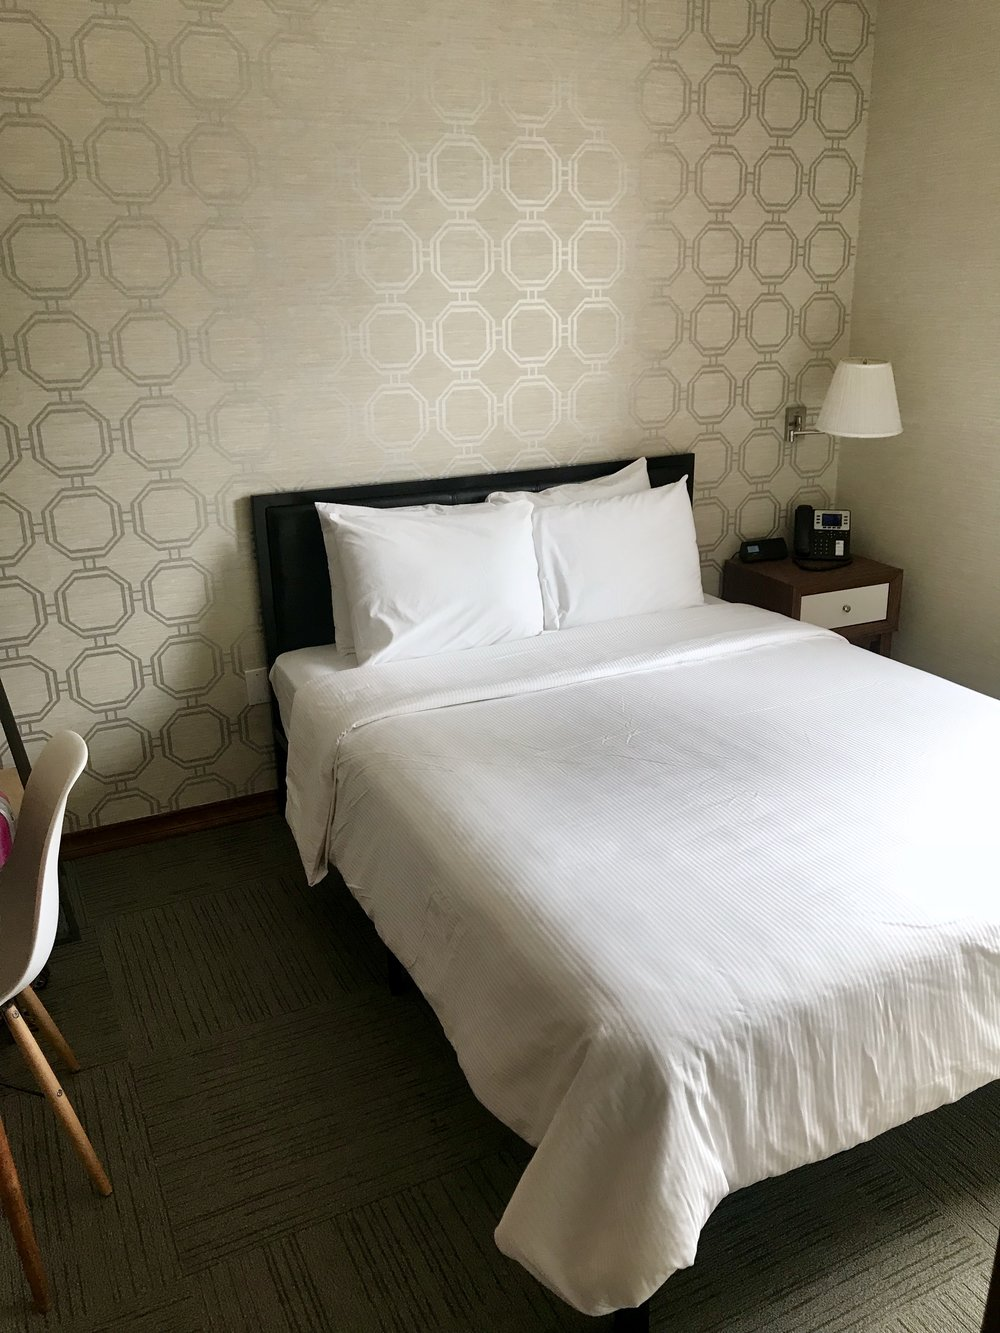 Quiet, immaculately clean rooms and high beds in each room